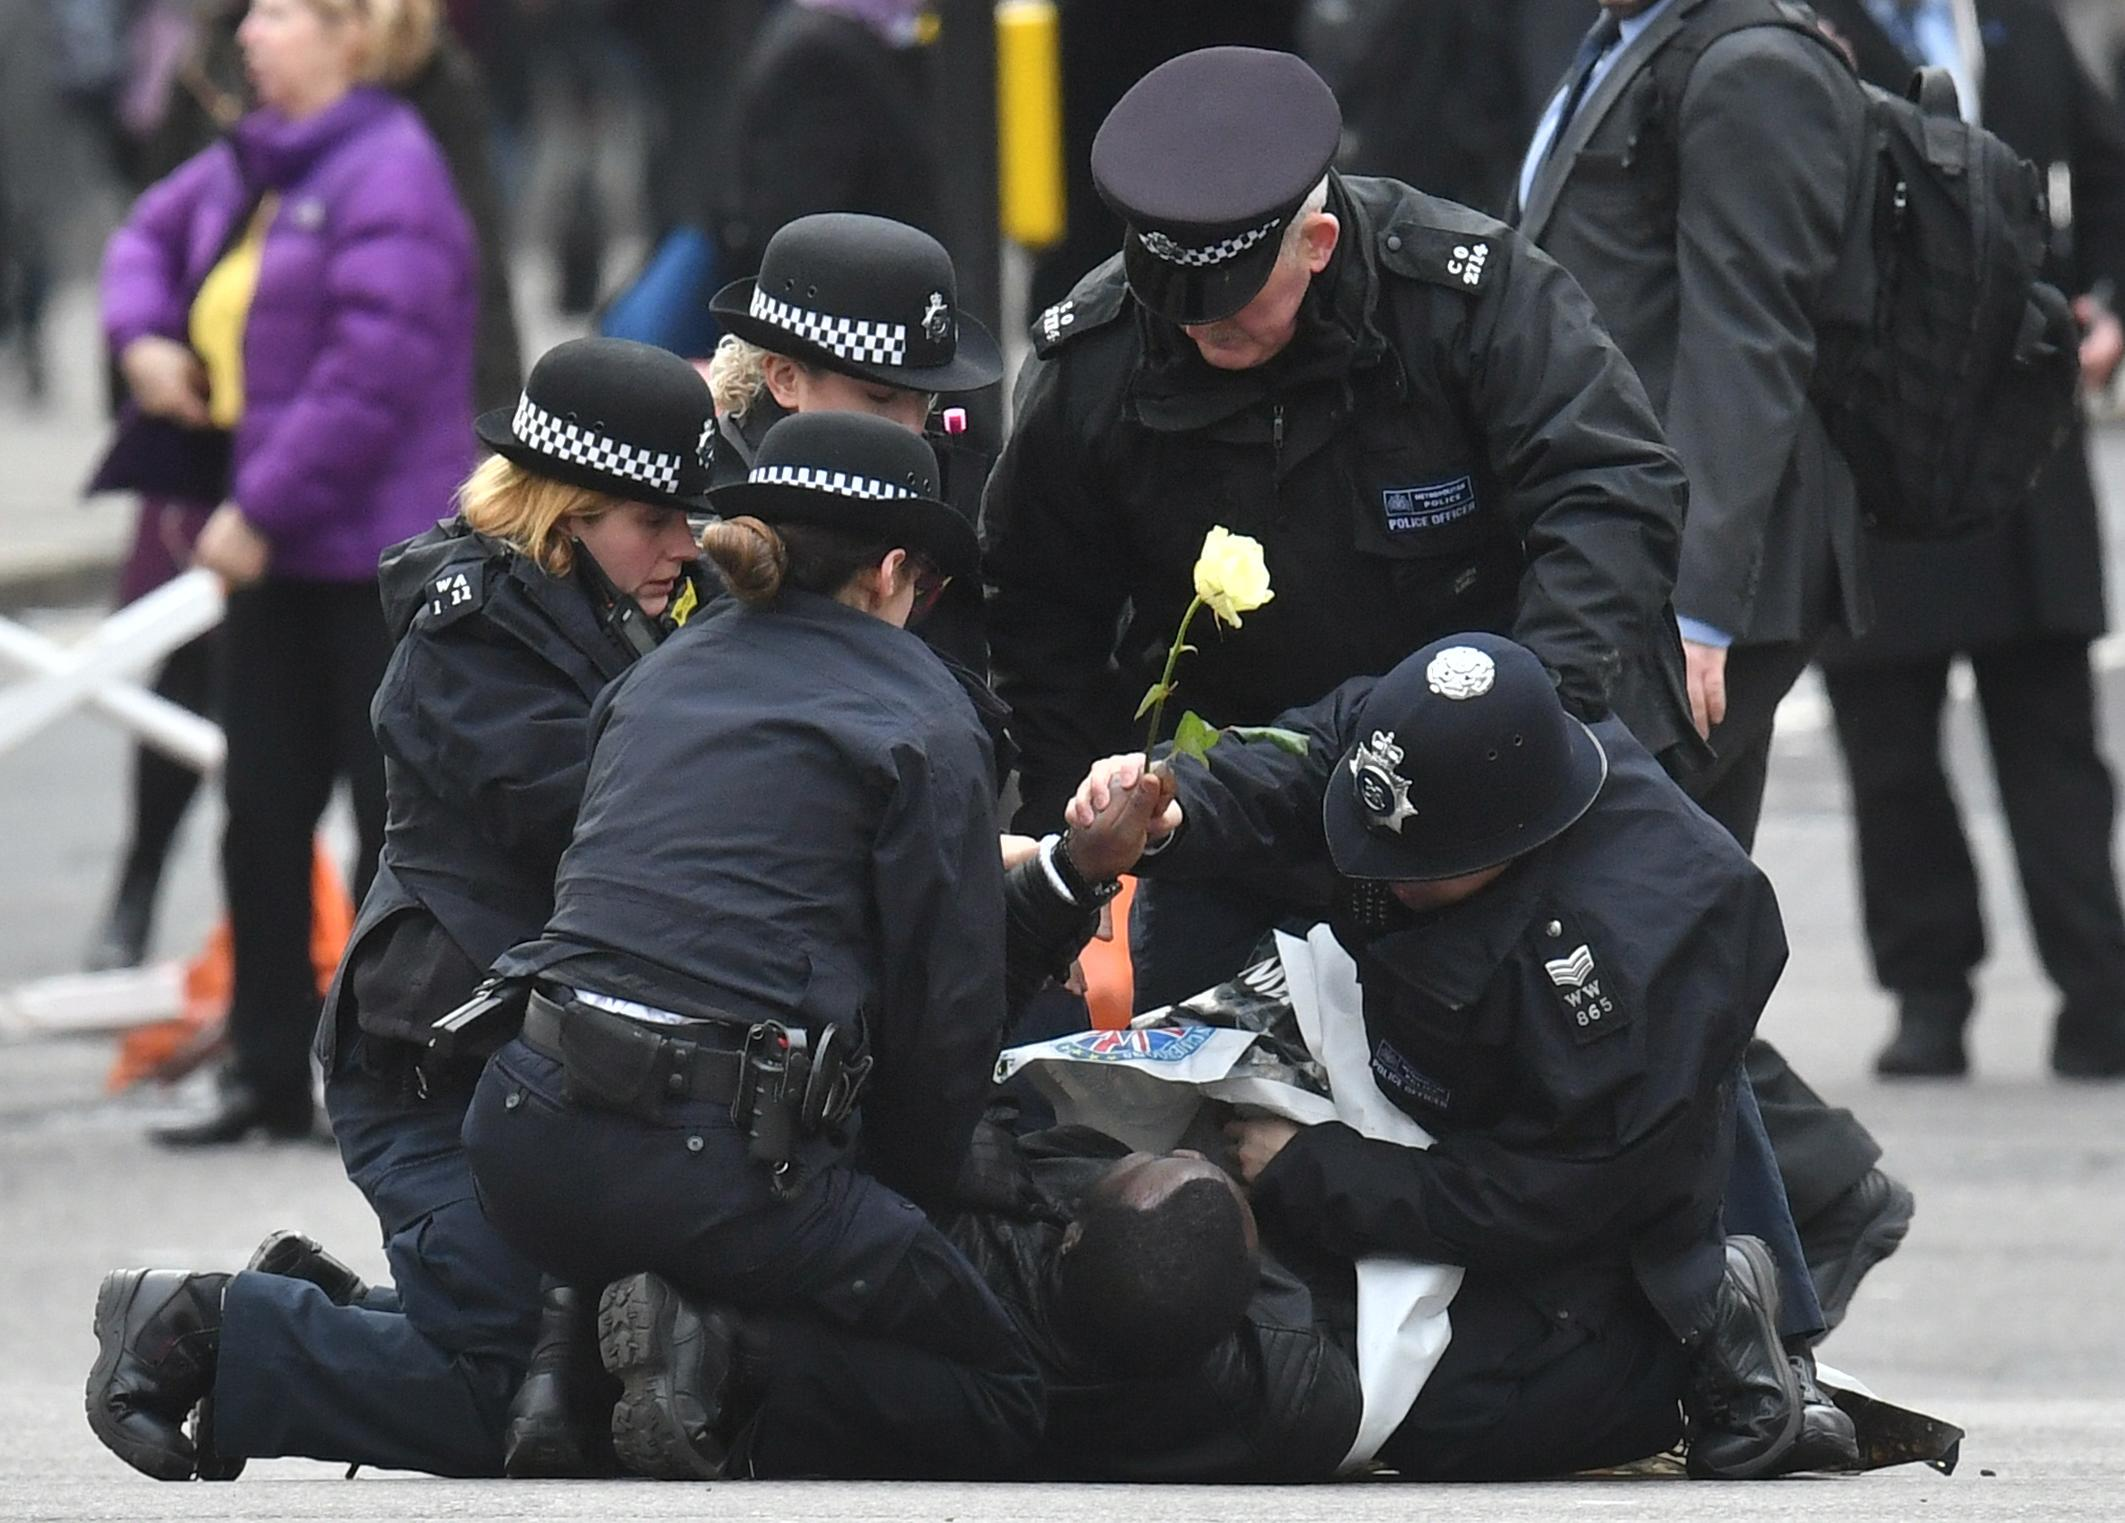 Police officers detain one of two men who ran into the road outside Westminster Abbey, London, ahead of the Commonwealth Service.